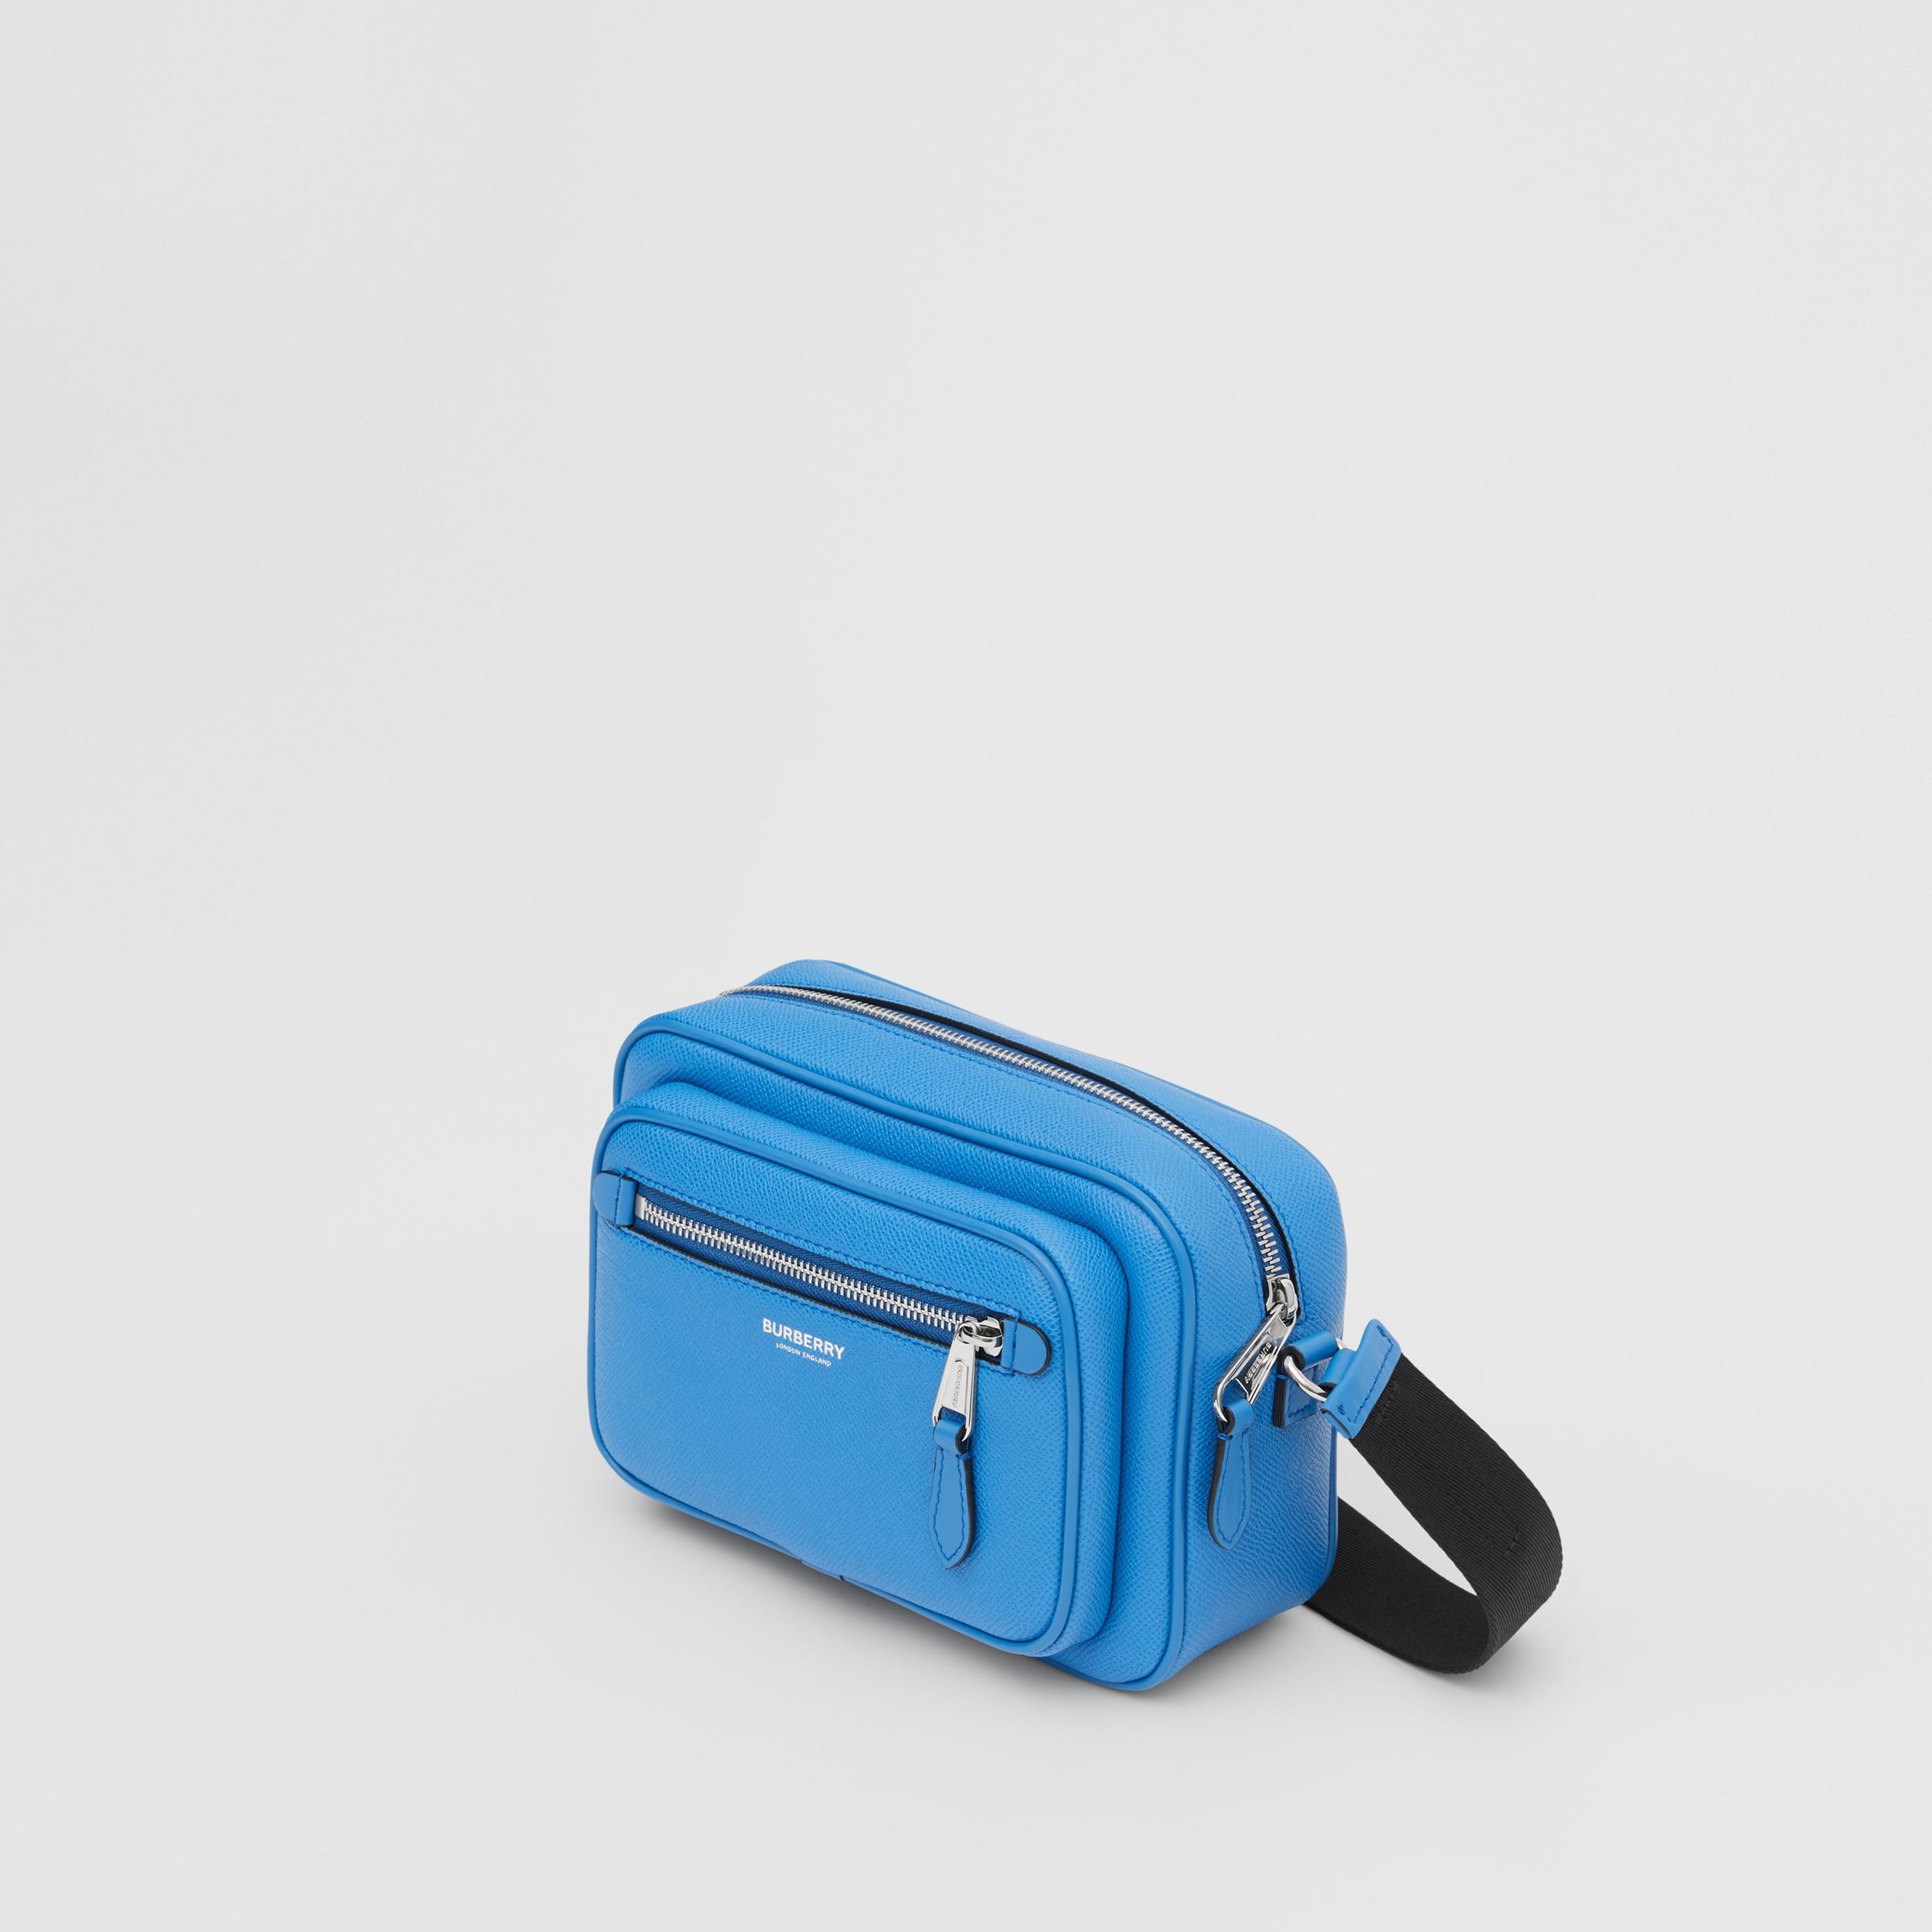 Grainy Leather Crossbody Bag in True Blue - Men | Burberry - 4